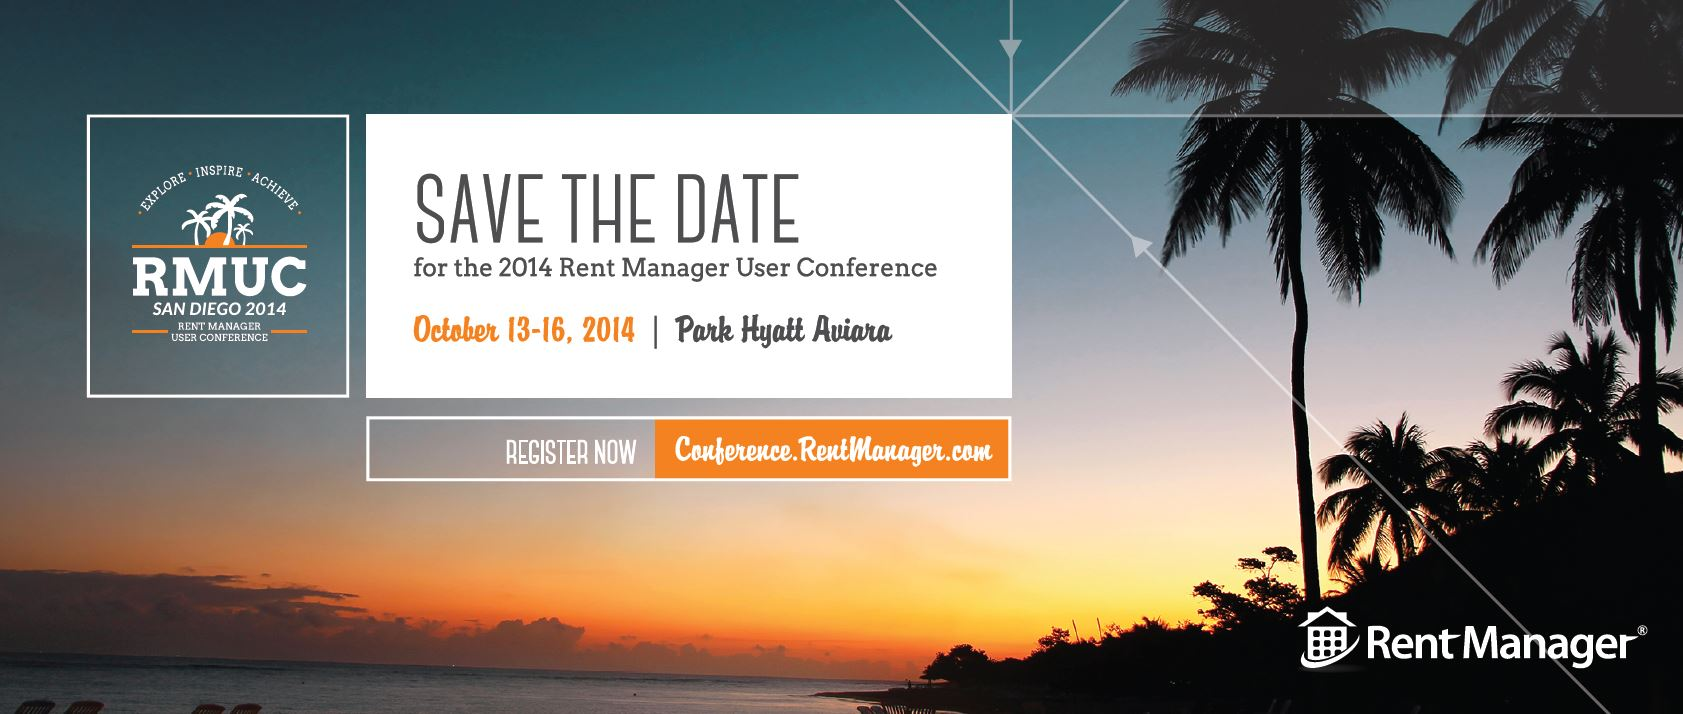 Better than ever before for Conference save the date template